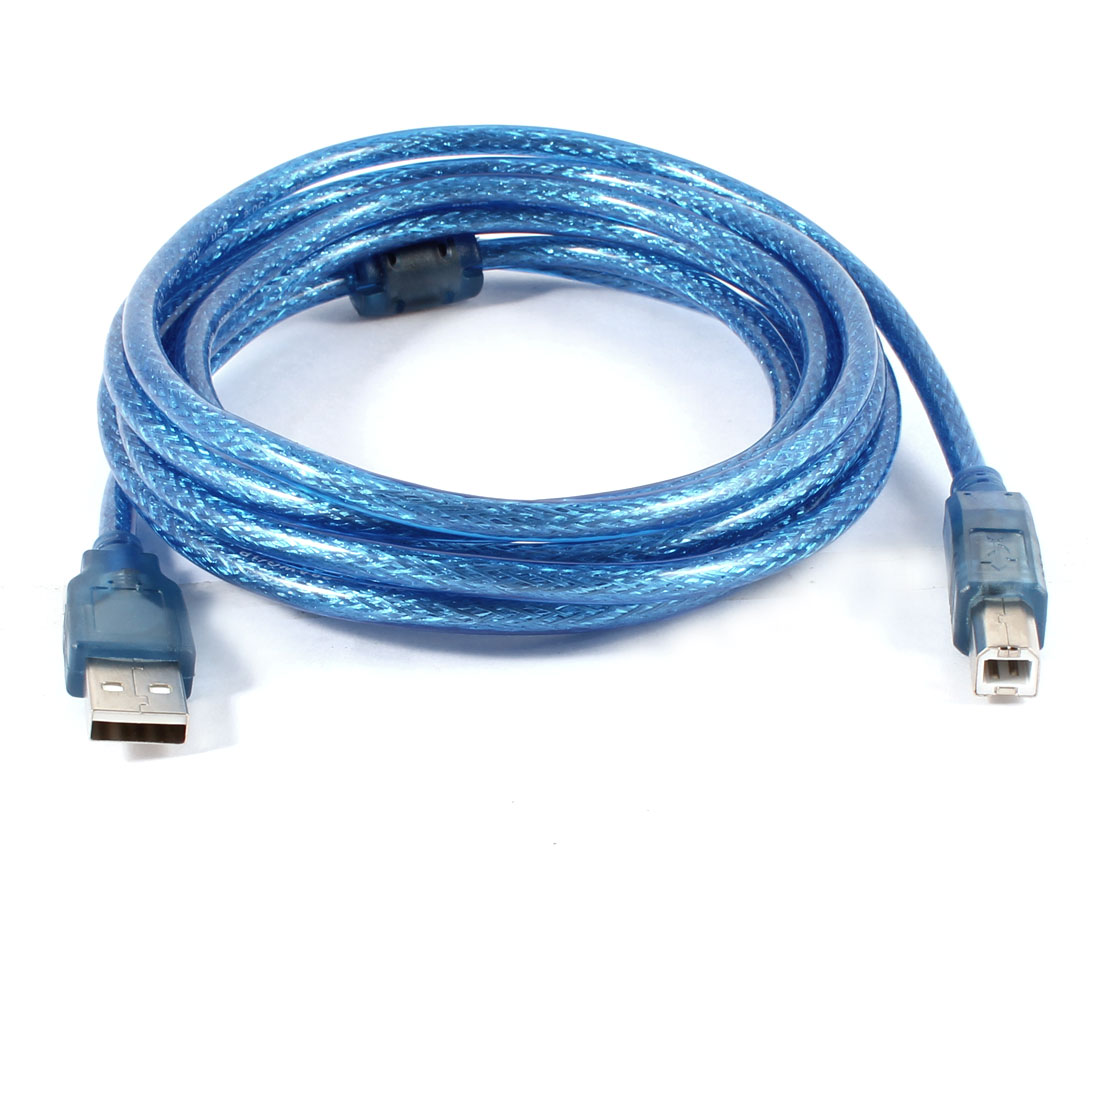 Unique Bargains High Speed USB 2.0 A Male to B Male M/M Printer Extension Cable Clear Blue 10ft